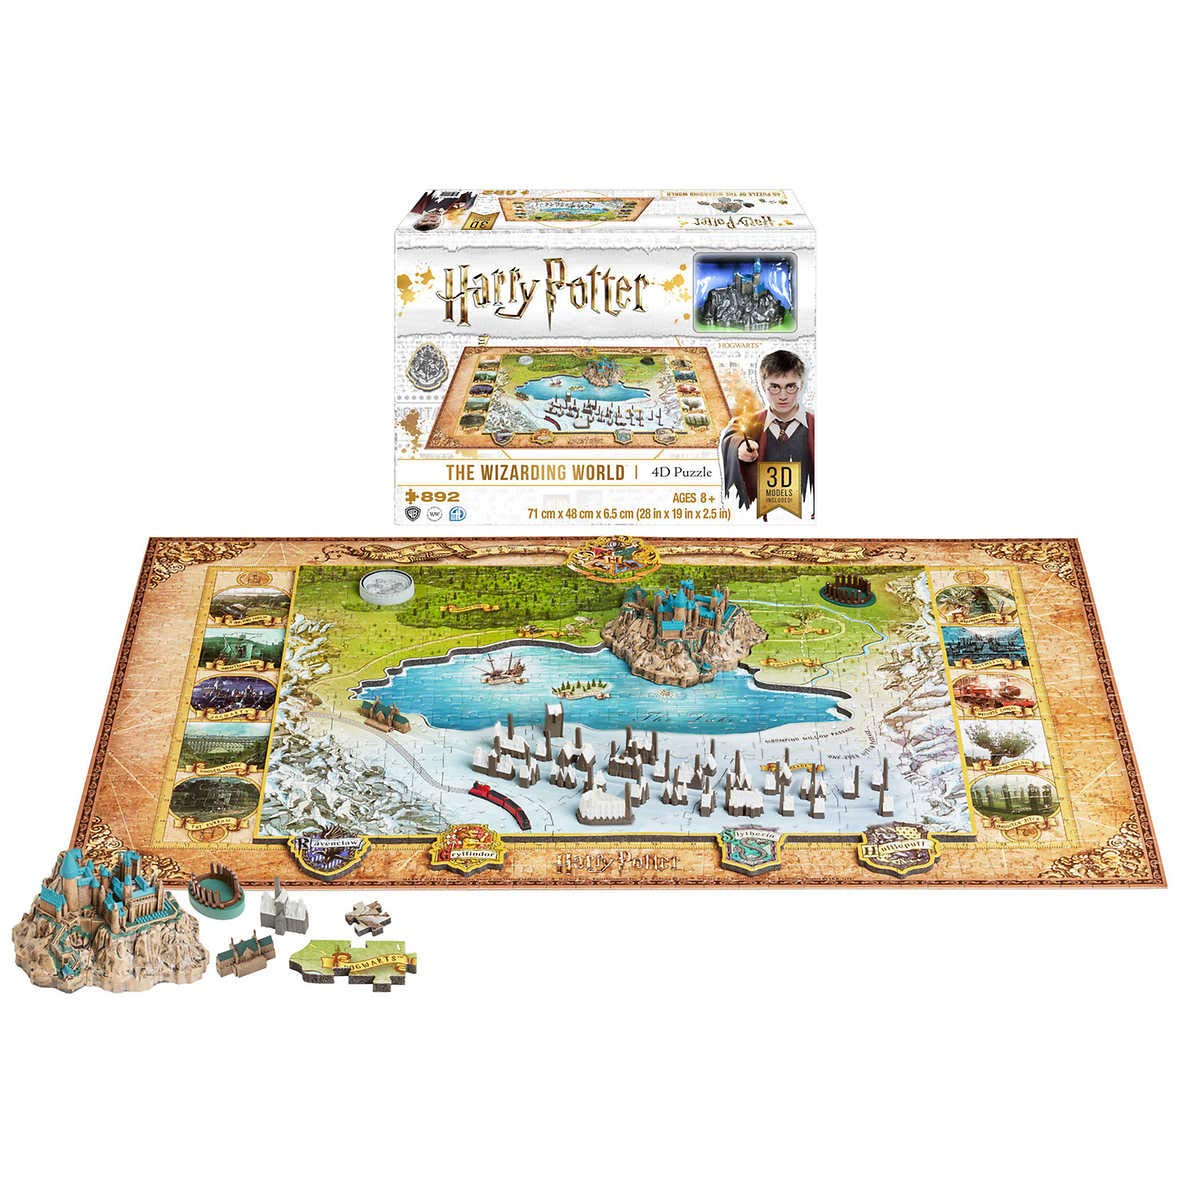 Harry Potter The Wizarding World 4D Puzzle with 3 Layers and Over 890 Pieces, Collector Puzzle for The Ultimate Harry Potter Fan! Generic